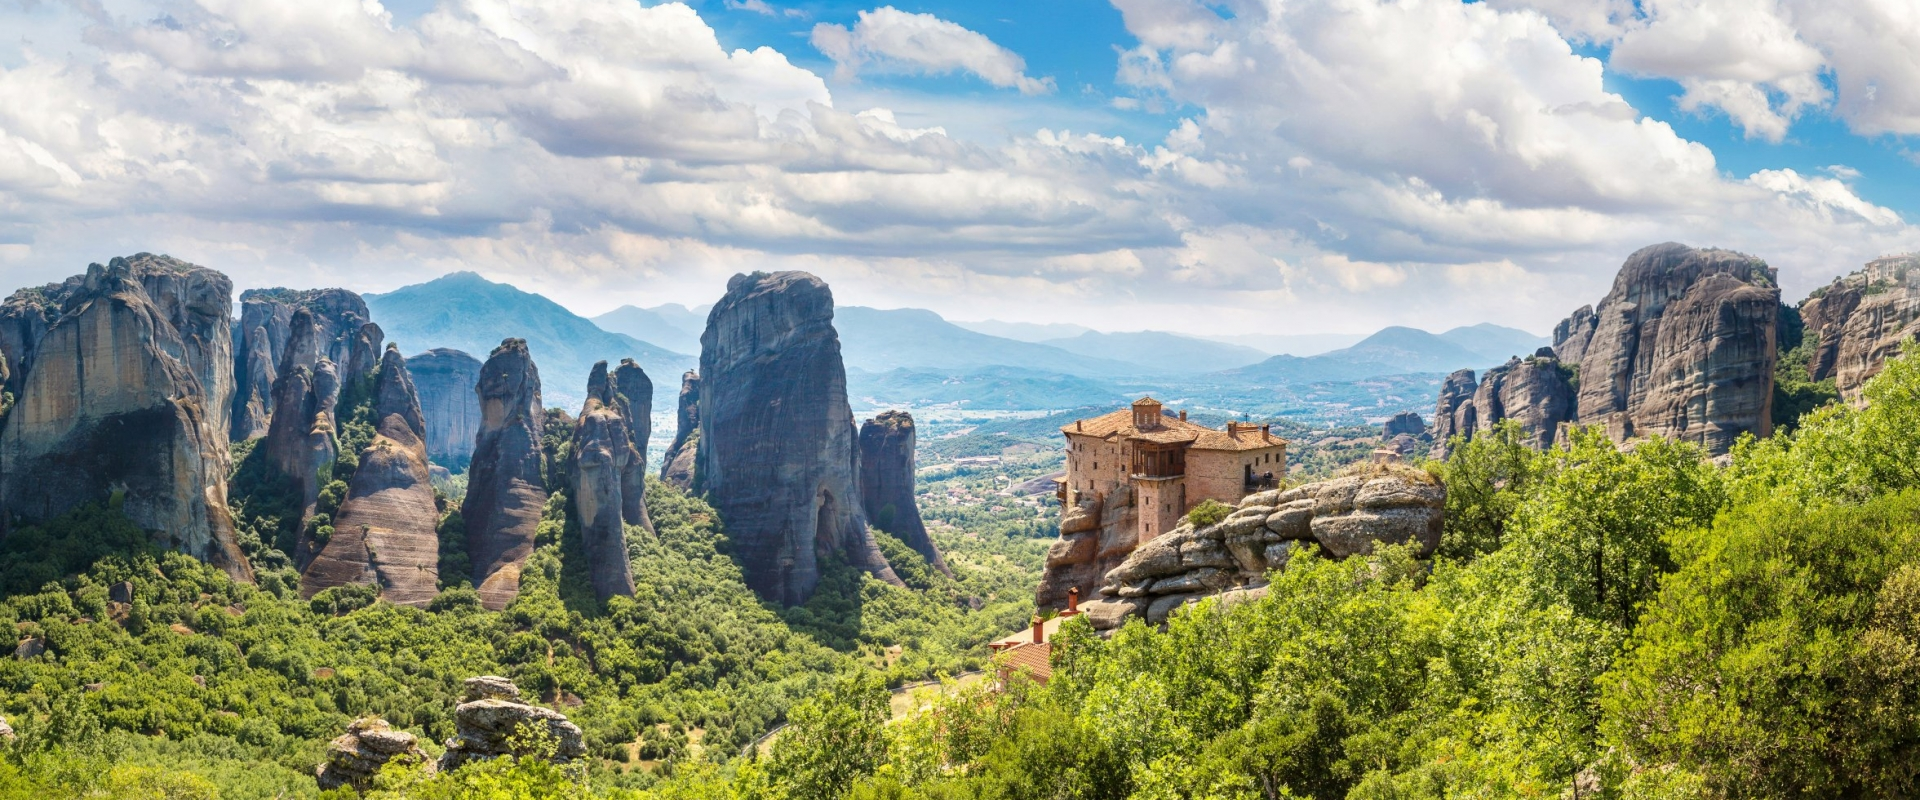 Rocks and monasteries in Meteora, Greece